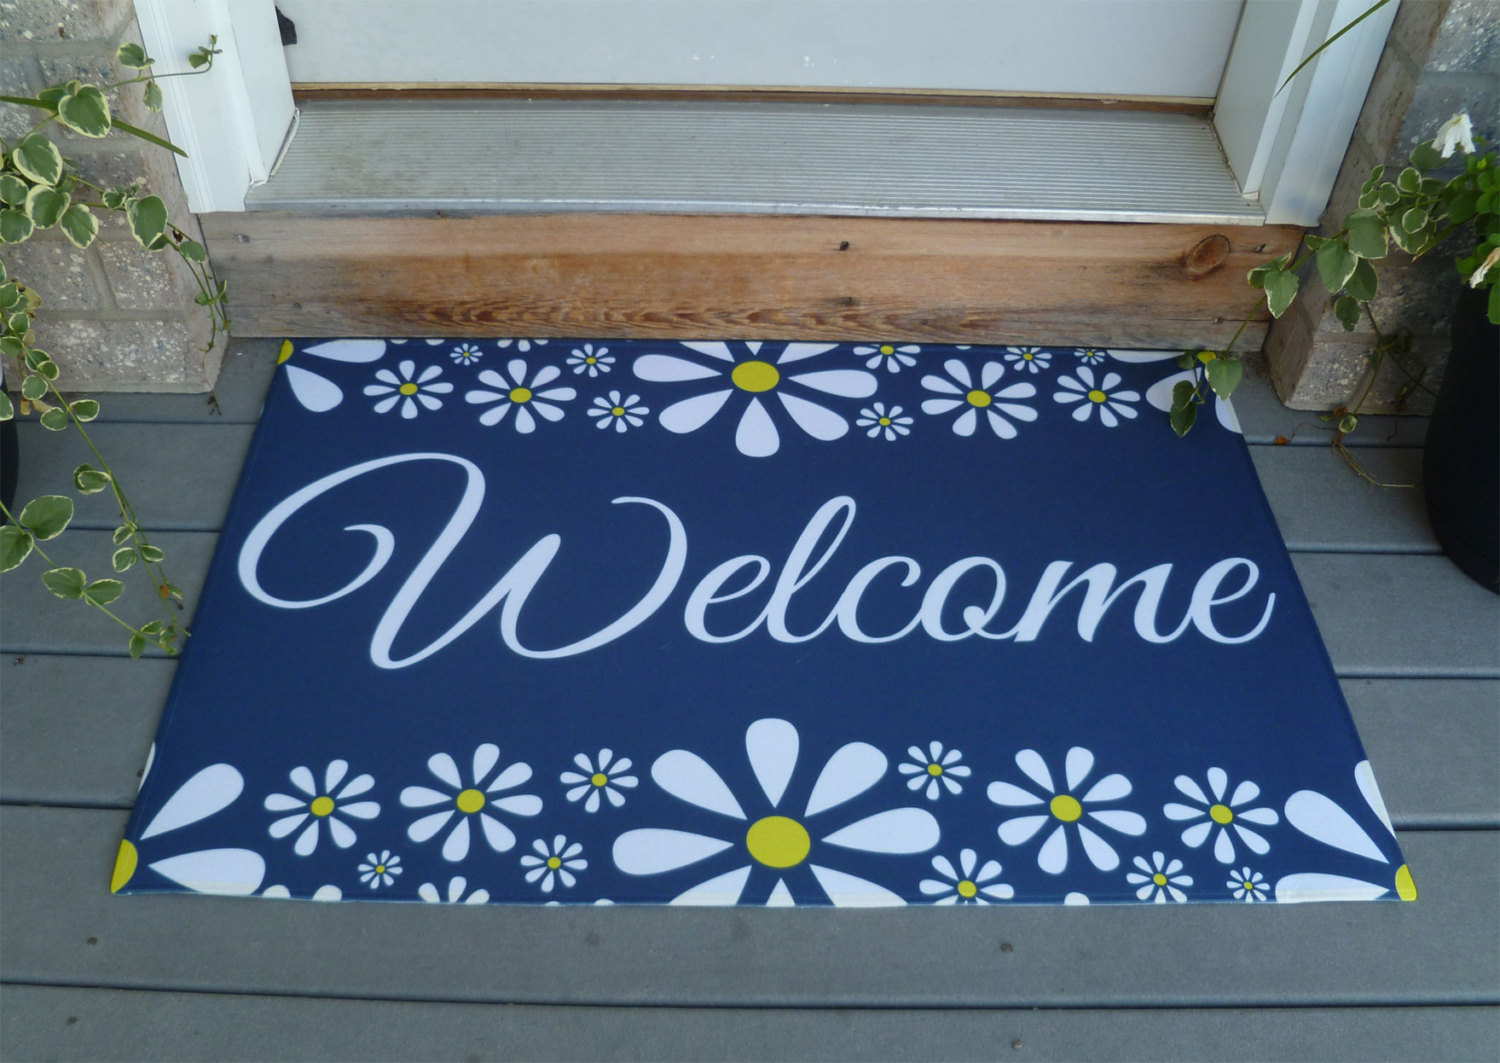 Decorative vibrant outdoor indoor welcome mat with flower for Decorative door mats indoor